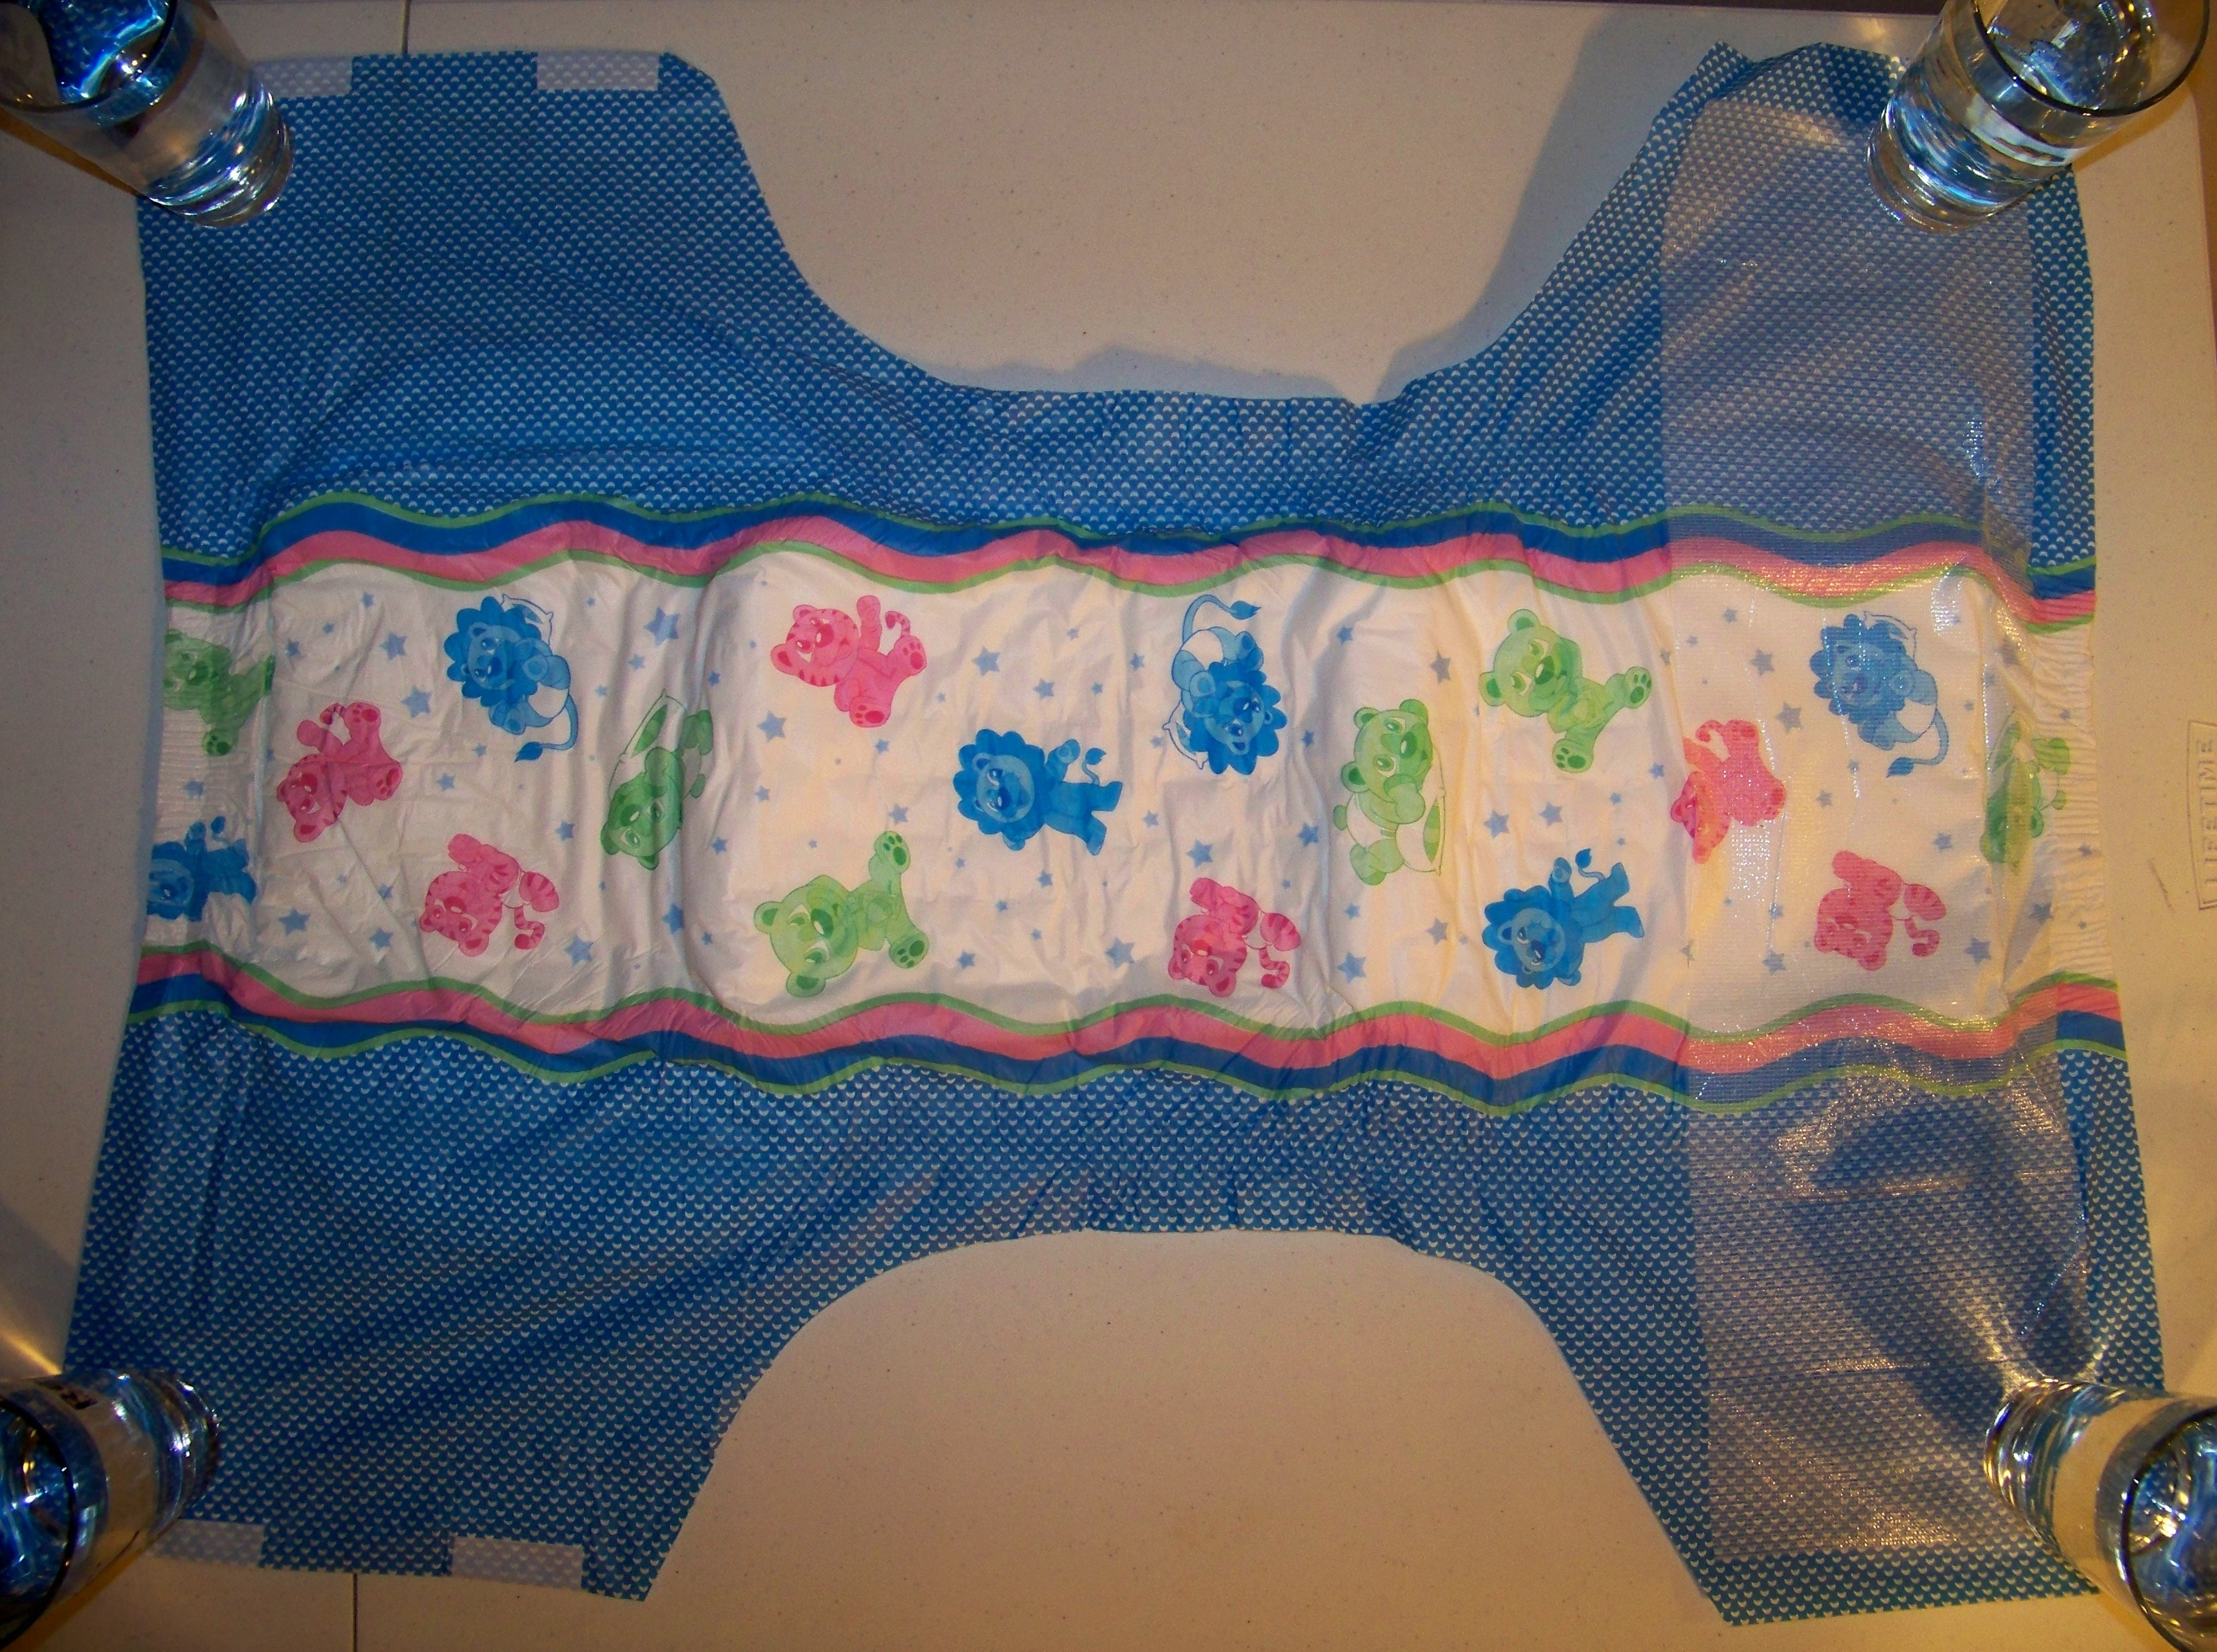 The padding feels dense with a firm and oily cotton texture. The diaper has  standing leak guards. It features elastic waistbands in both the front and  back.